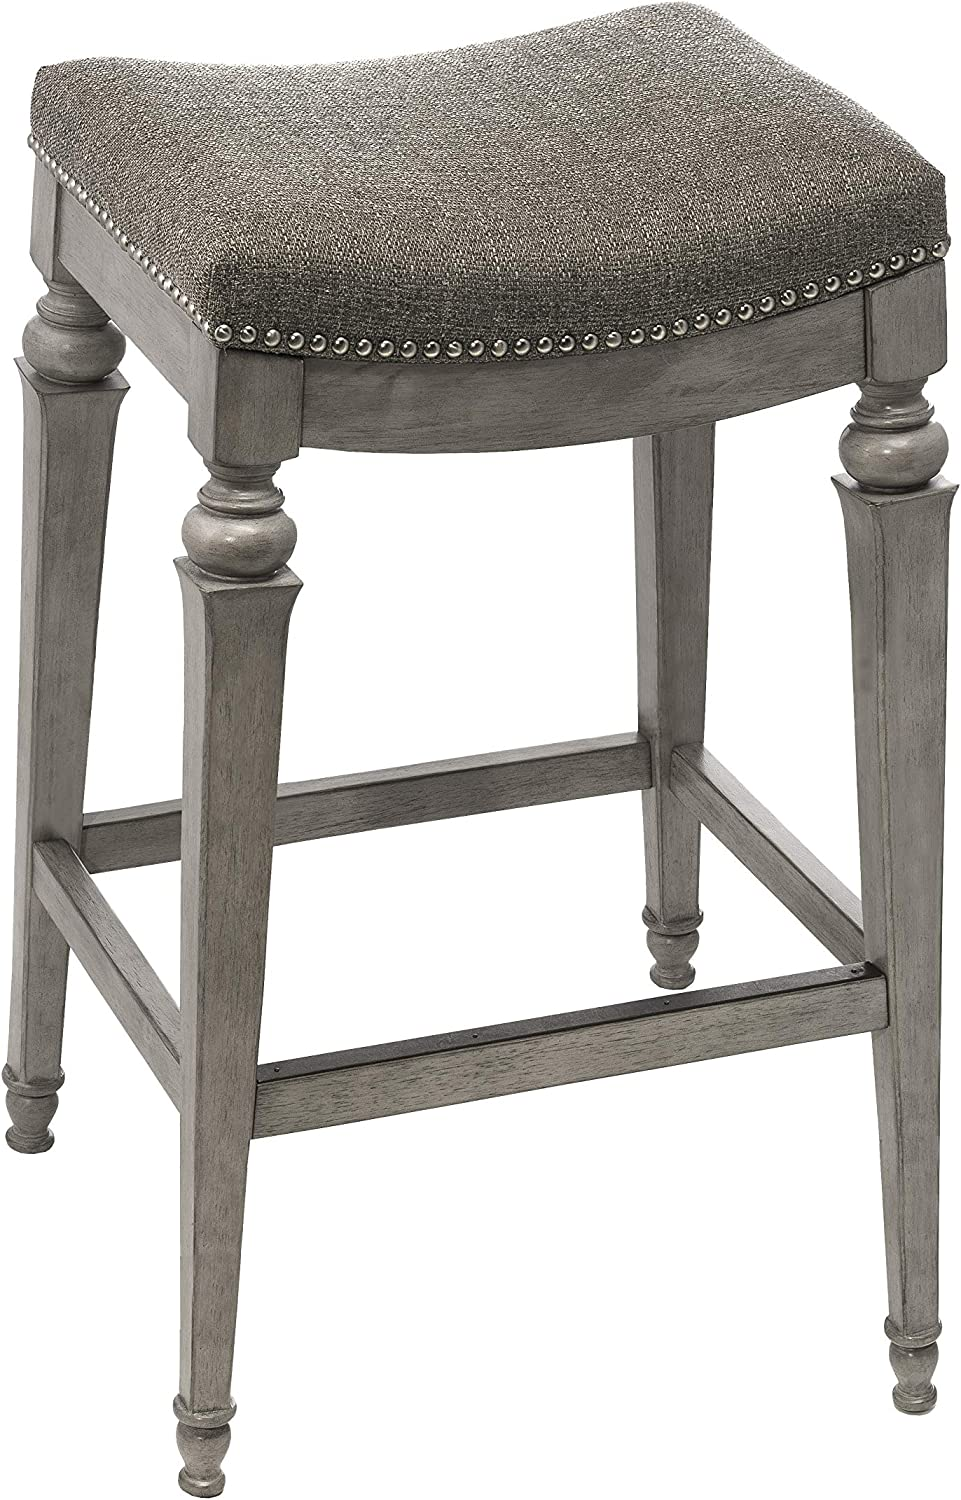 Hillsdale Furniture Vetrina Backless Non-Swivel Bar Stool, Weathered Grey